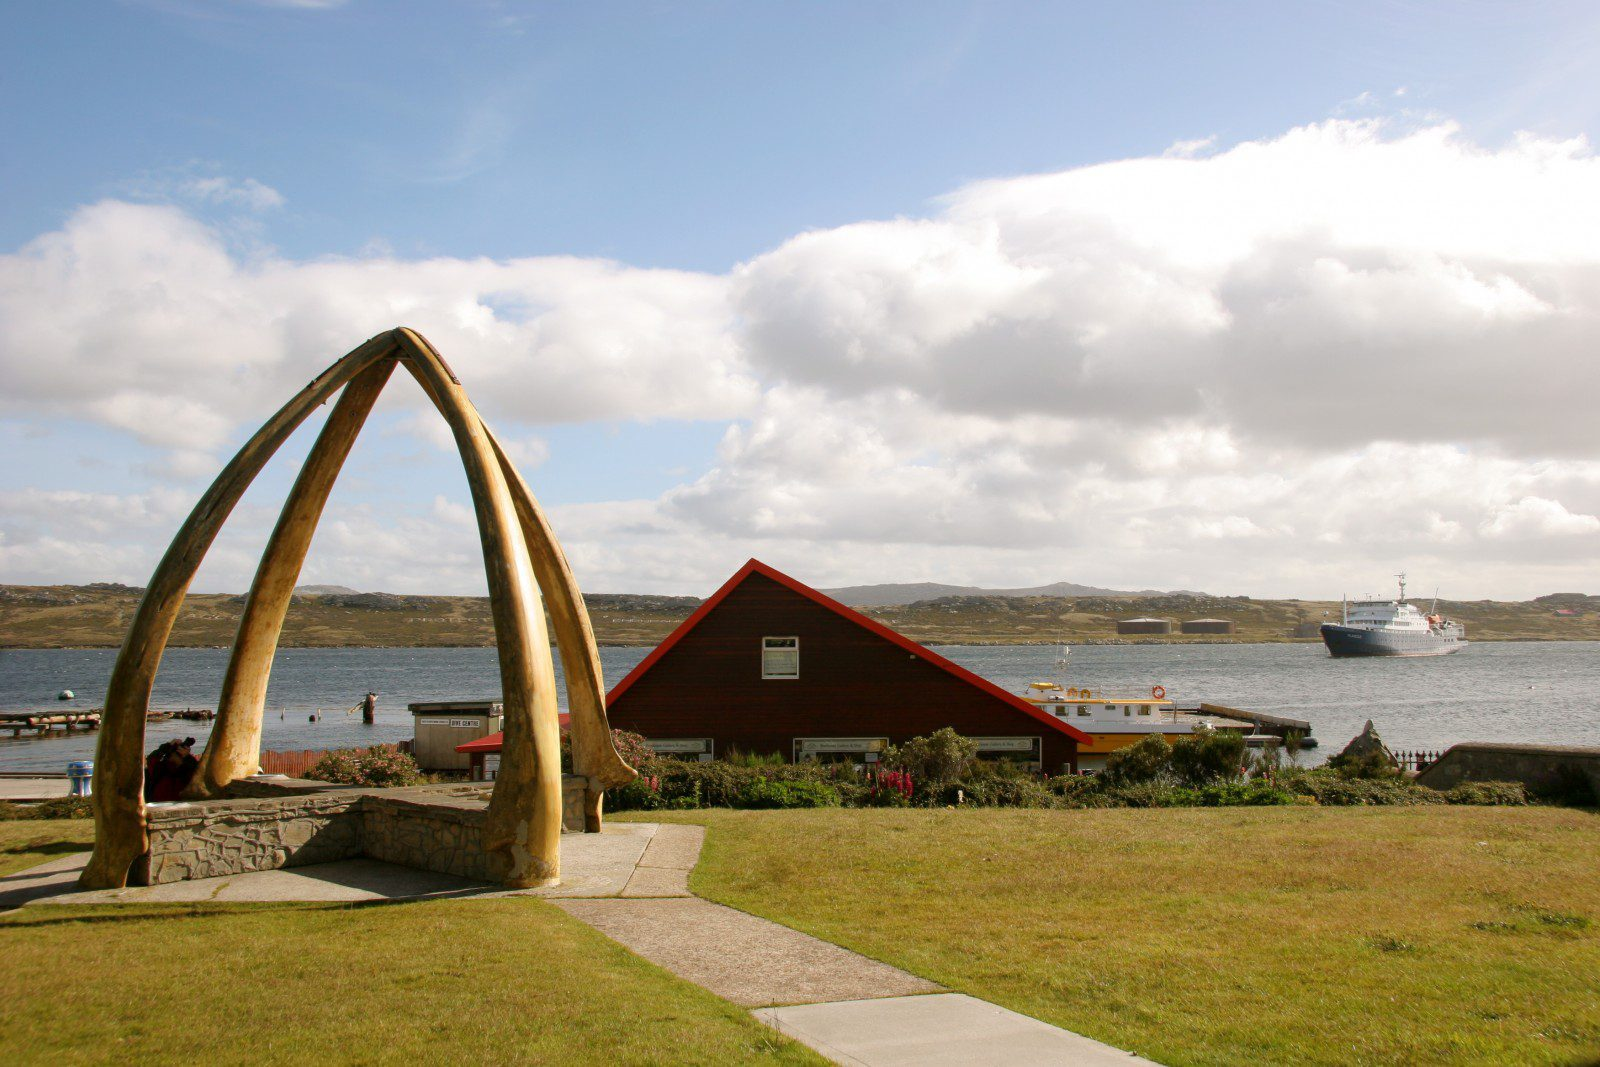 Whalebone Arch at the edge of the waters in Port Stanley on the Falkland Islands